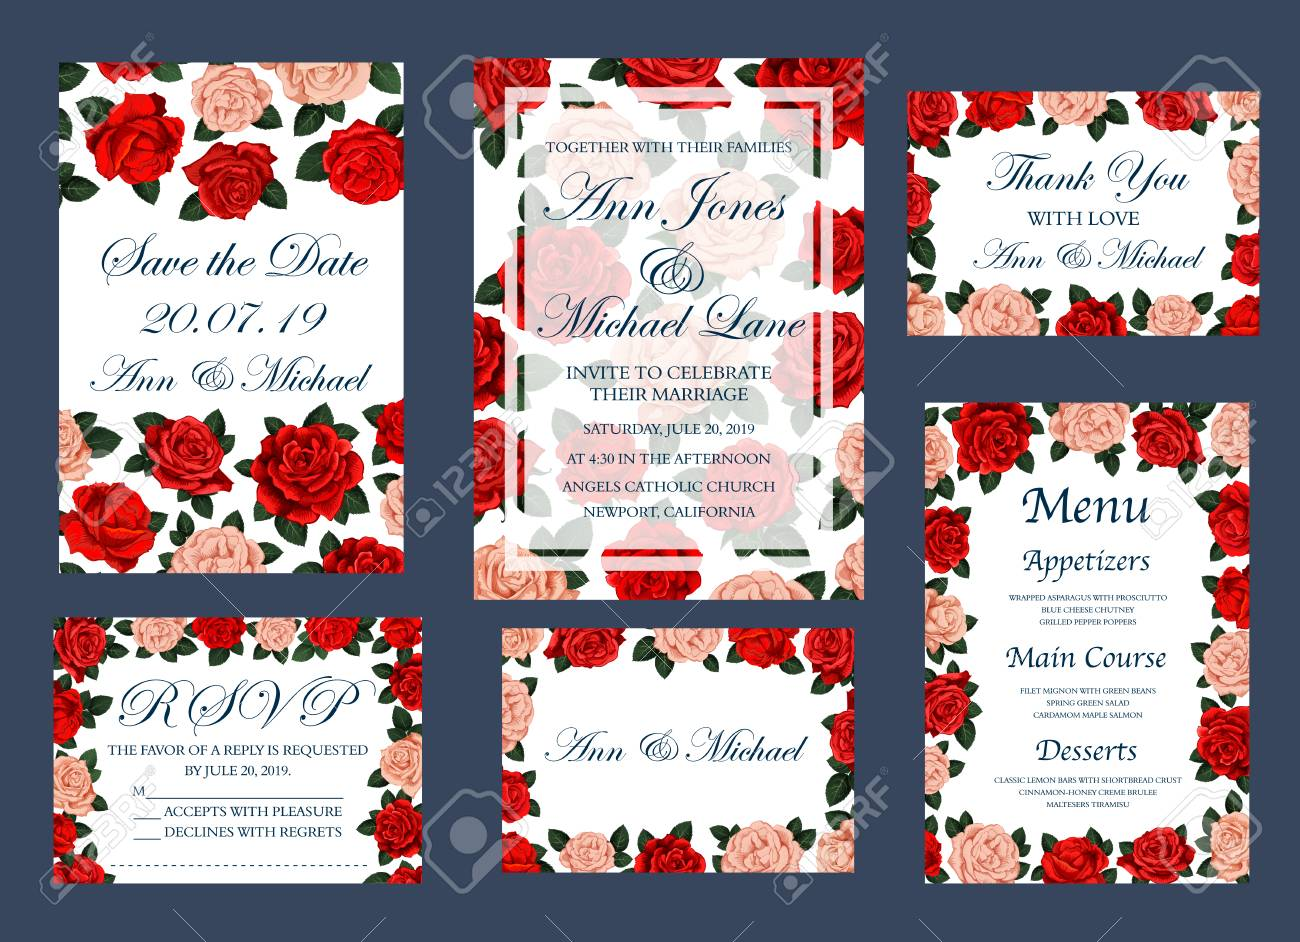 Save The Date Invitation Cards And Wedding Or Engagement Party ...